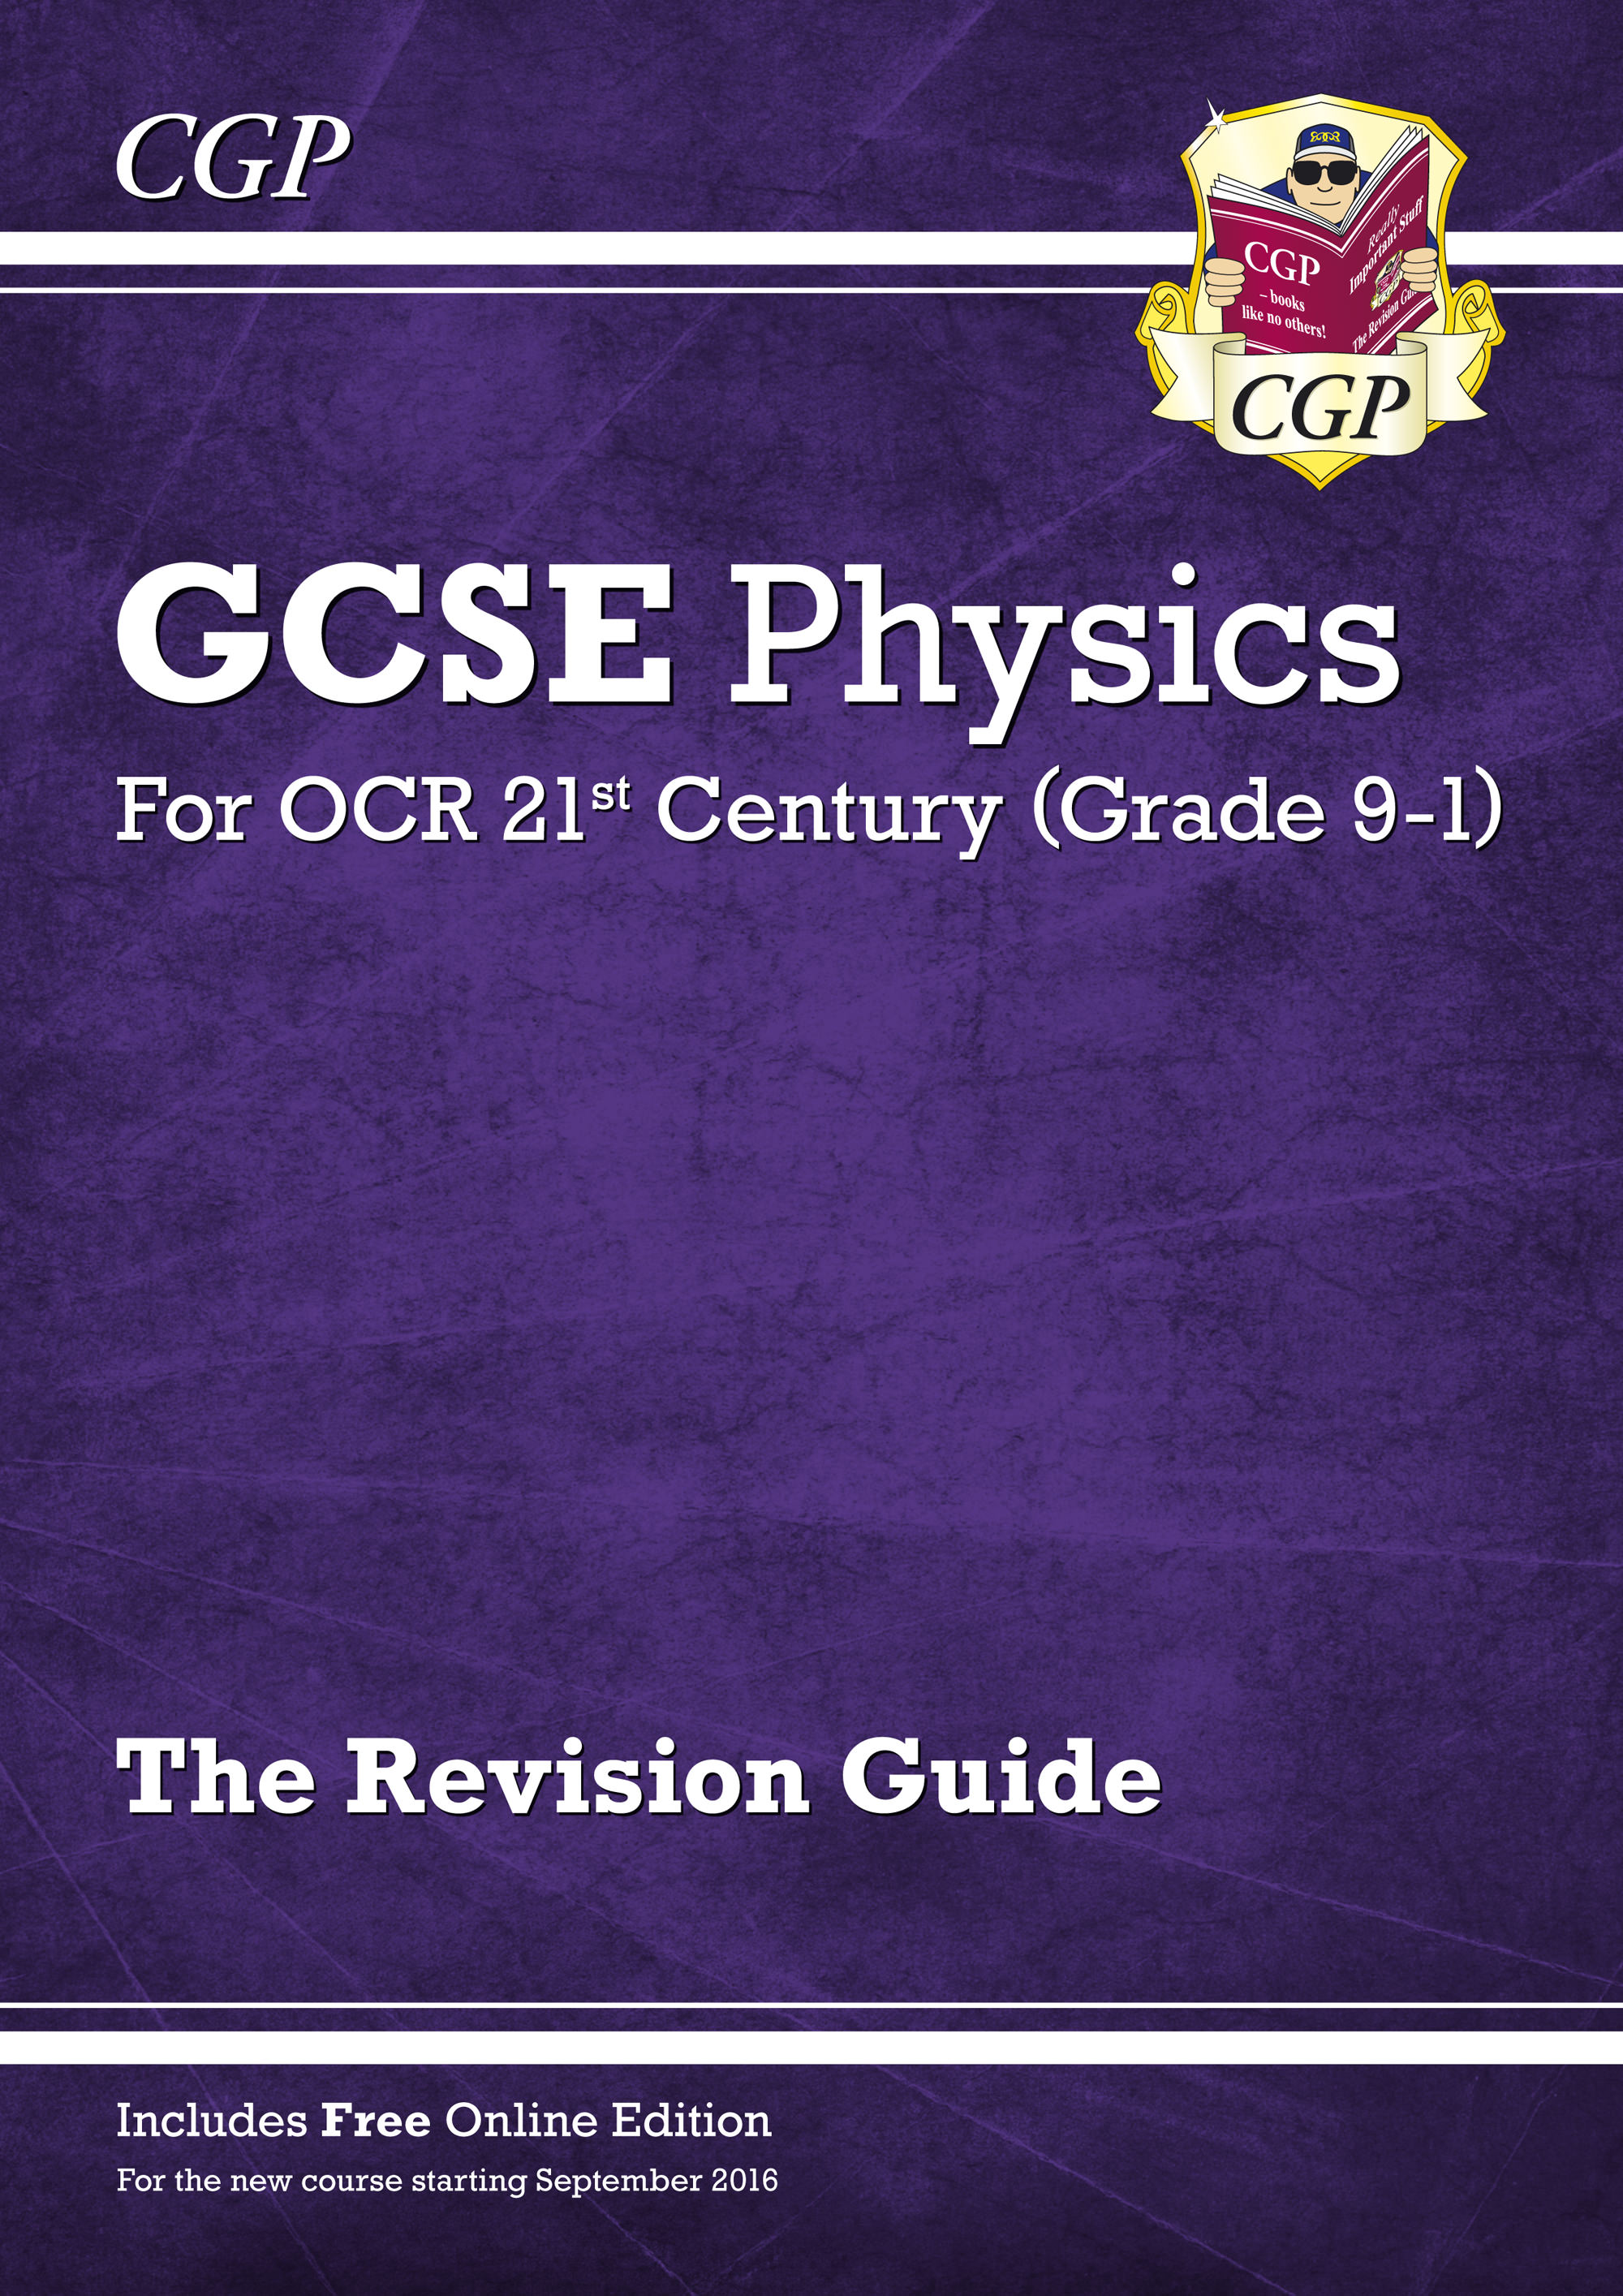 P2R45 - New Grade 9-1 GCSE Physics: OCR 21st Century Revision Guide with Online Edition